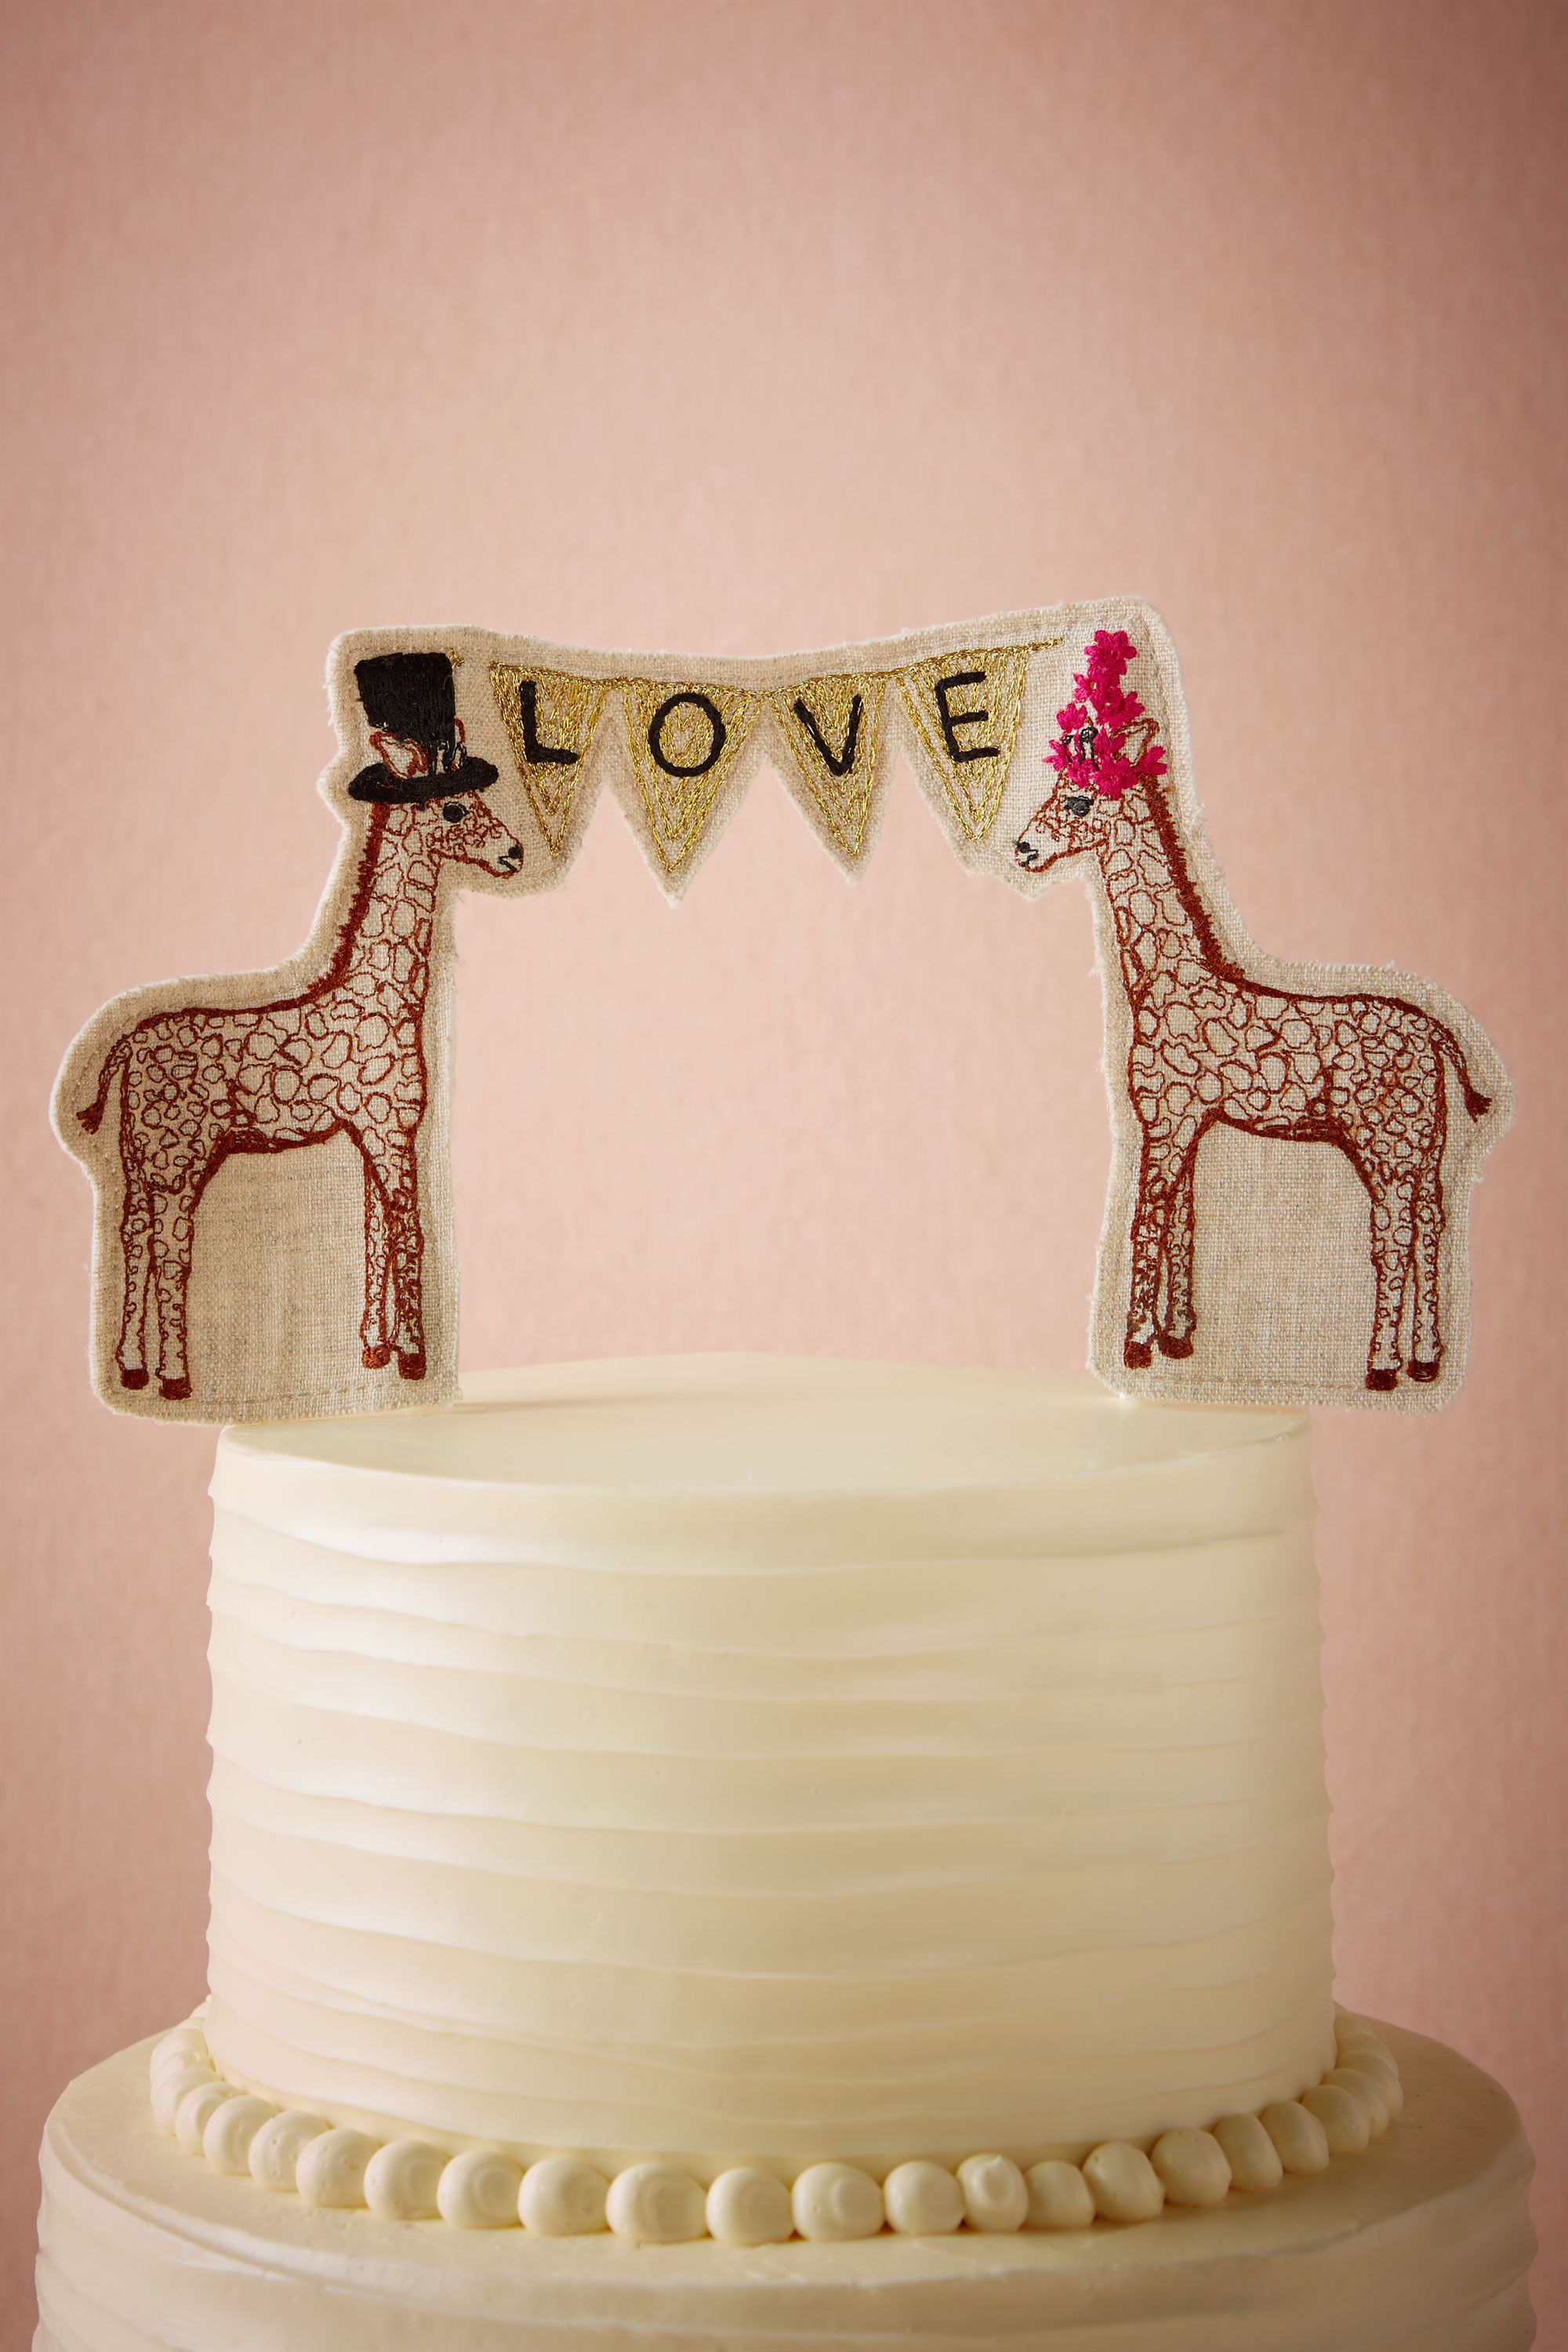 Lovesome Giraffes Cake Topper in Dcor BHLDN